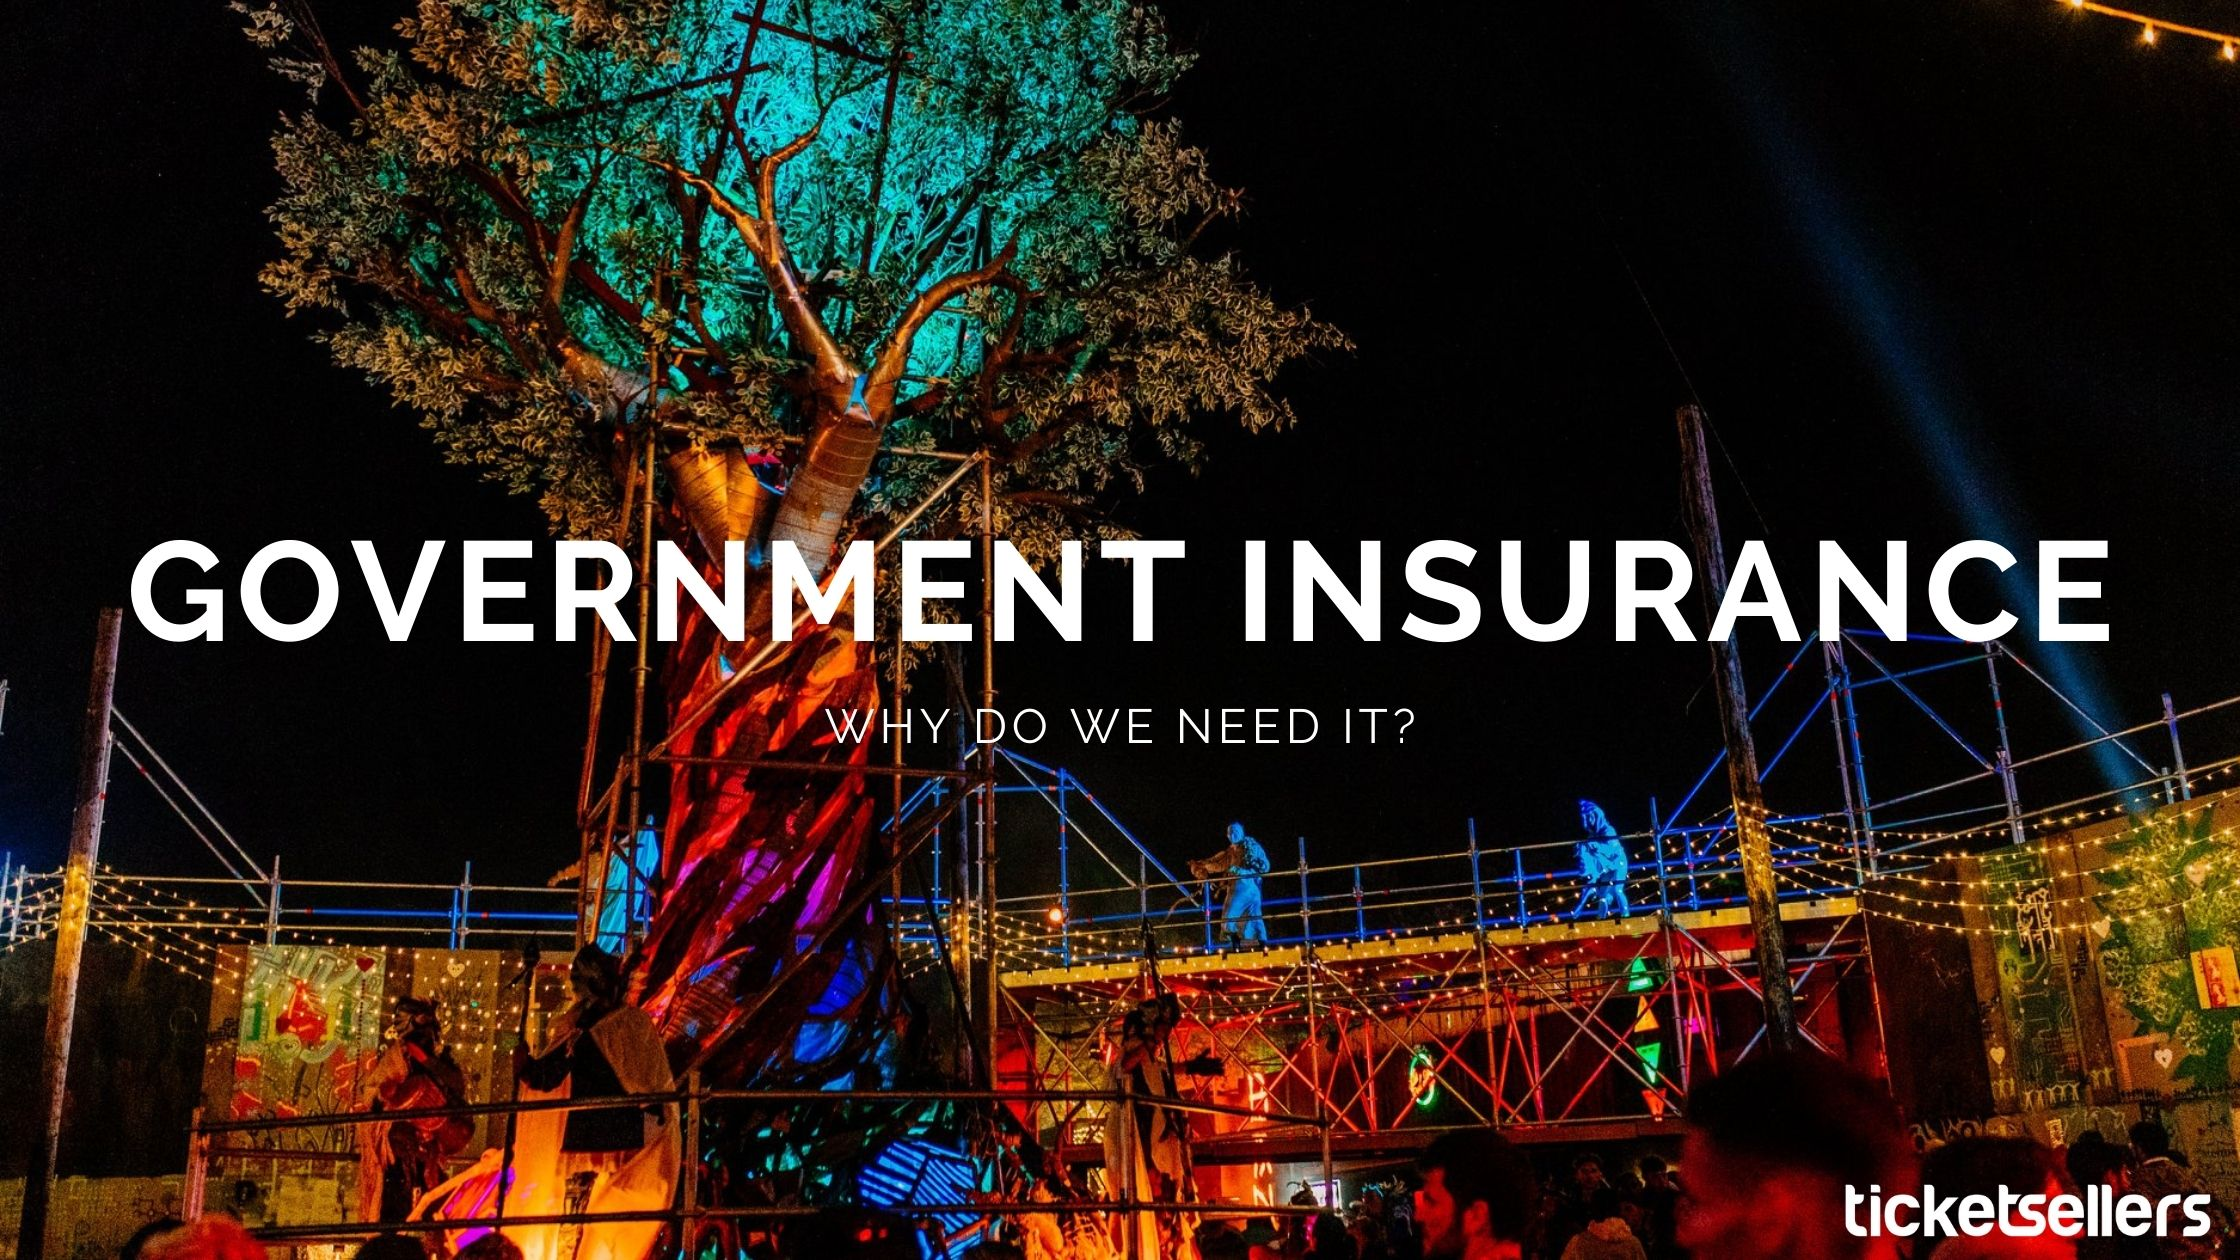 "Blog banner reads: ""GOVERNMENT INSURANCE - WHY DO WE NEED IT?"" over an image of Boomtown Festival set design"